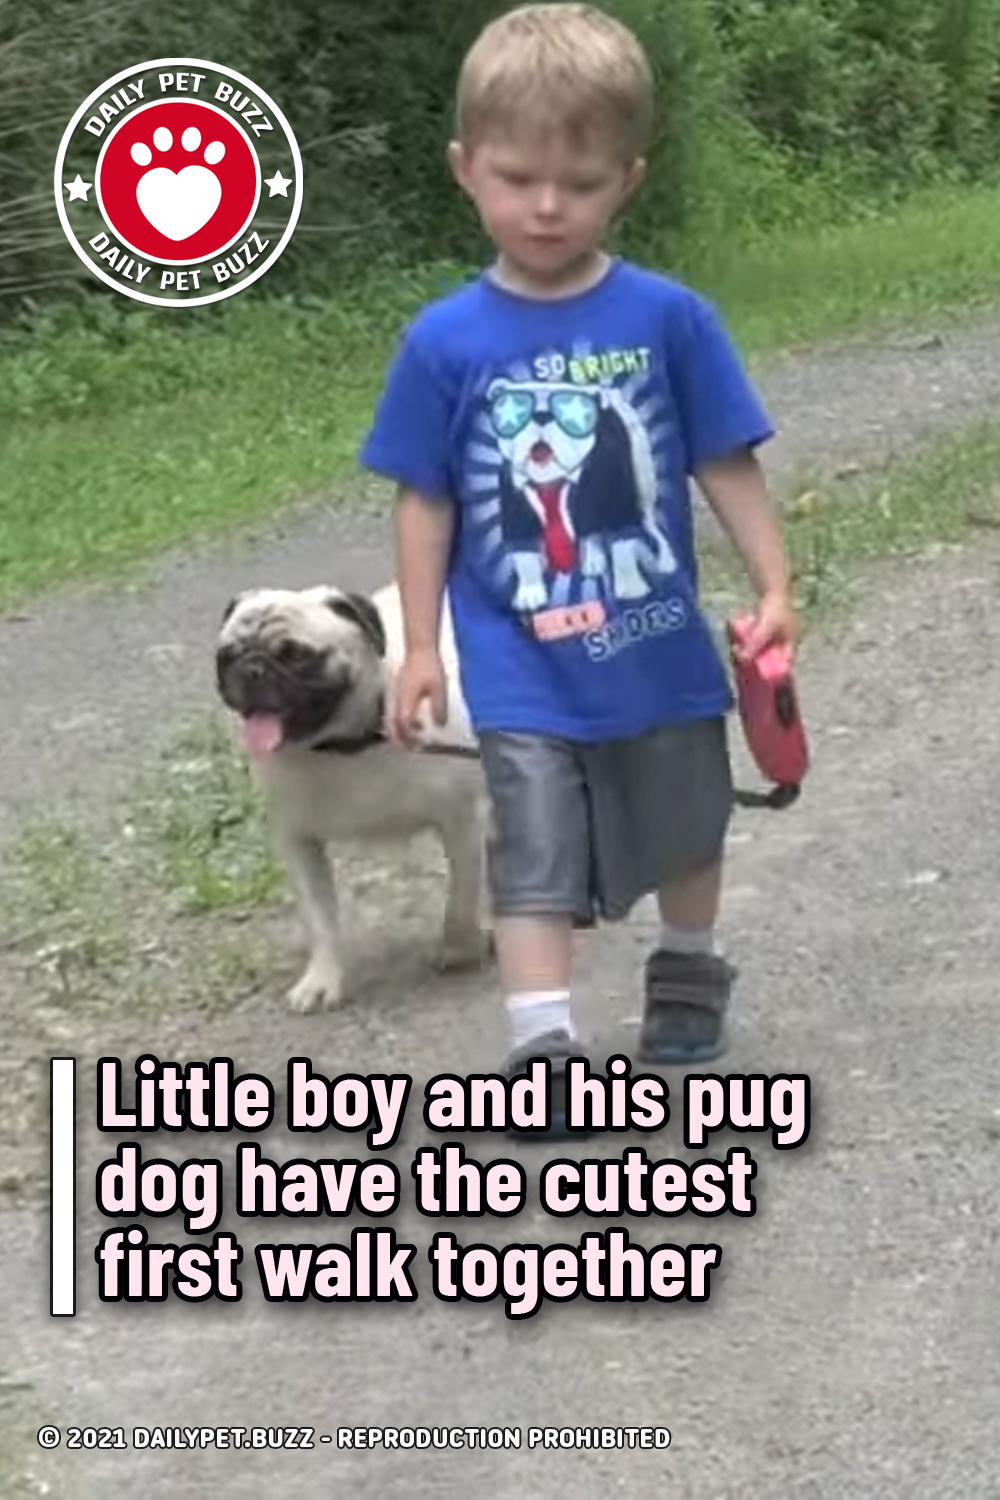 Little boy and his pug dog have the cutest first walk together